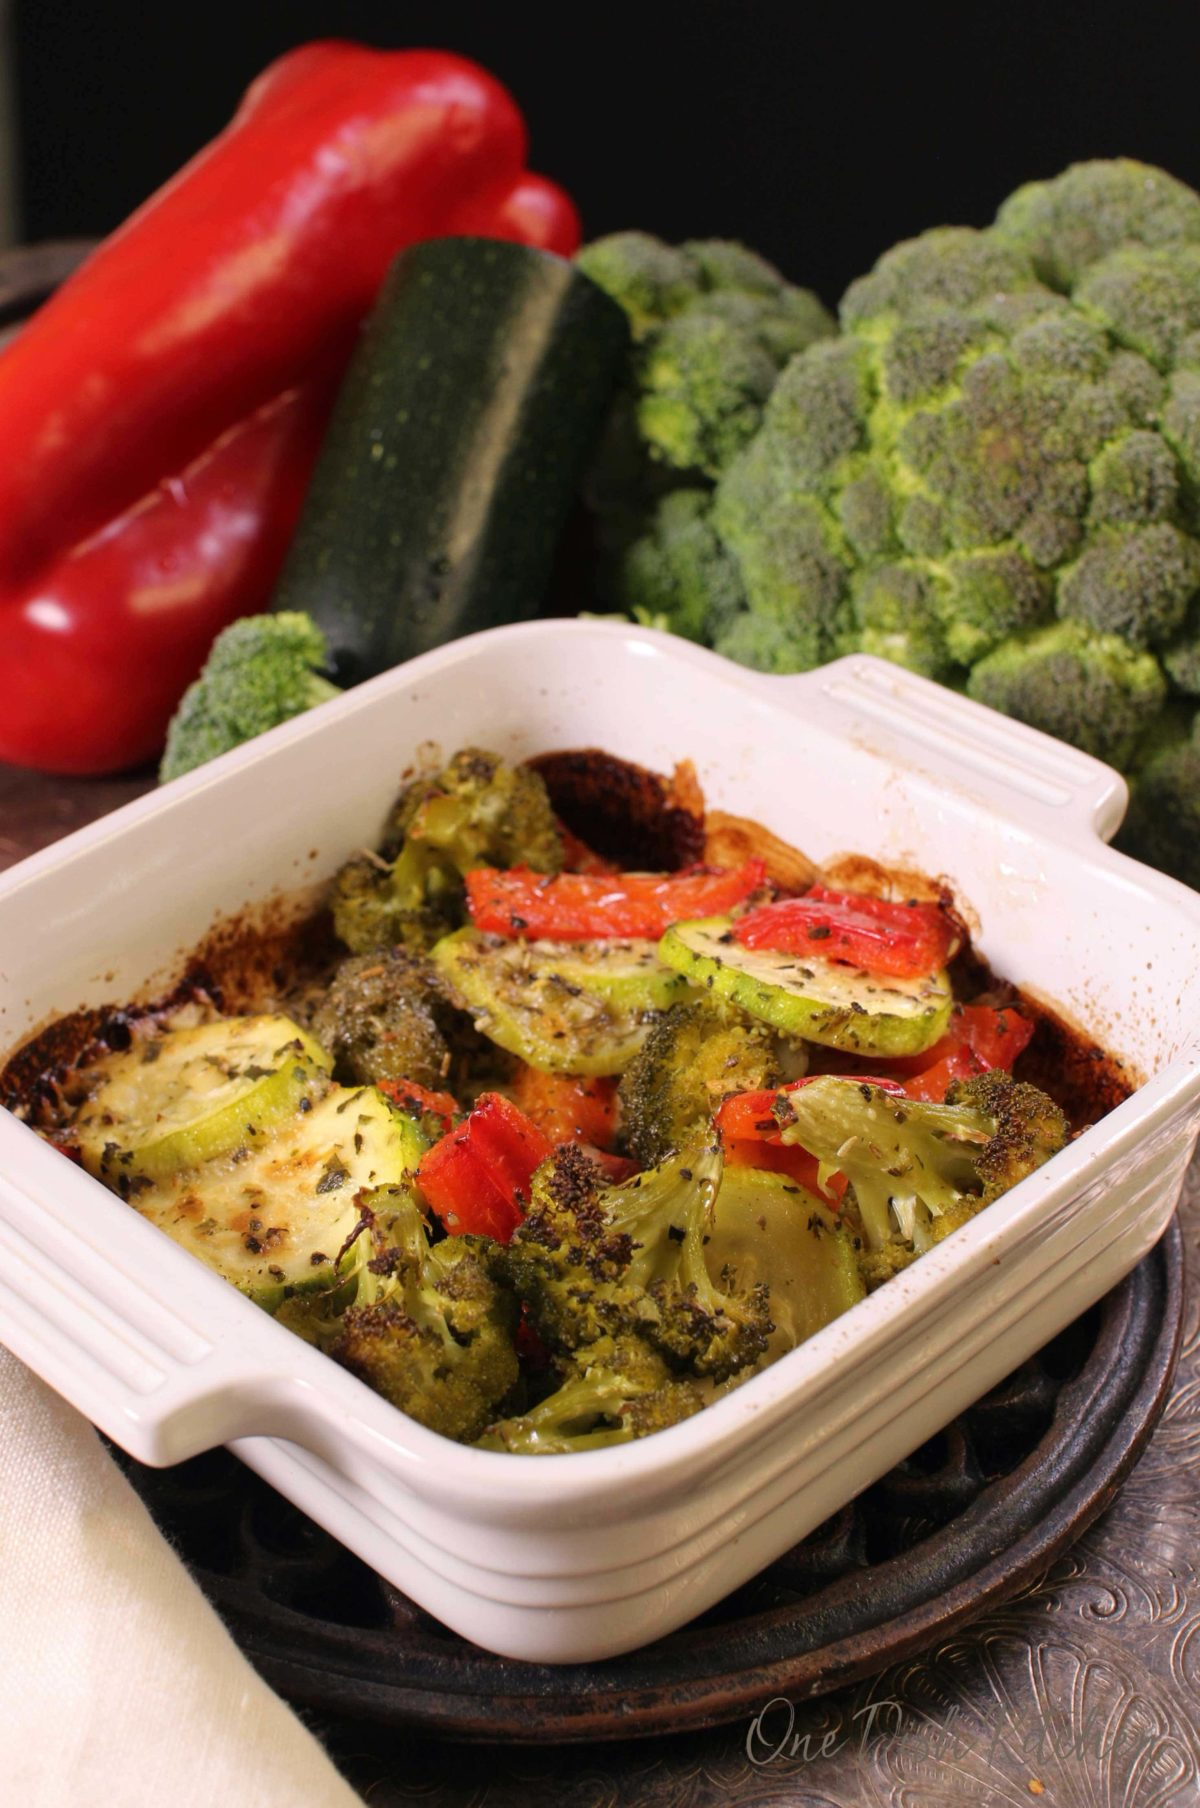 zucchini, red peppers, and onions cooked in a small baking dish with a cheese topping.